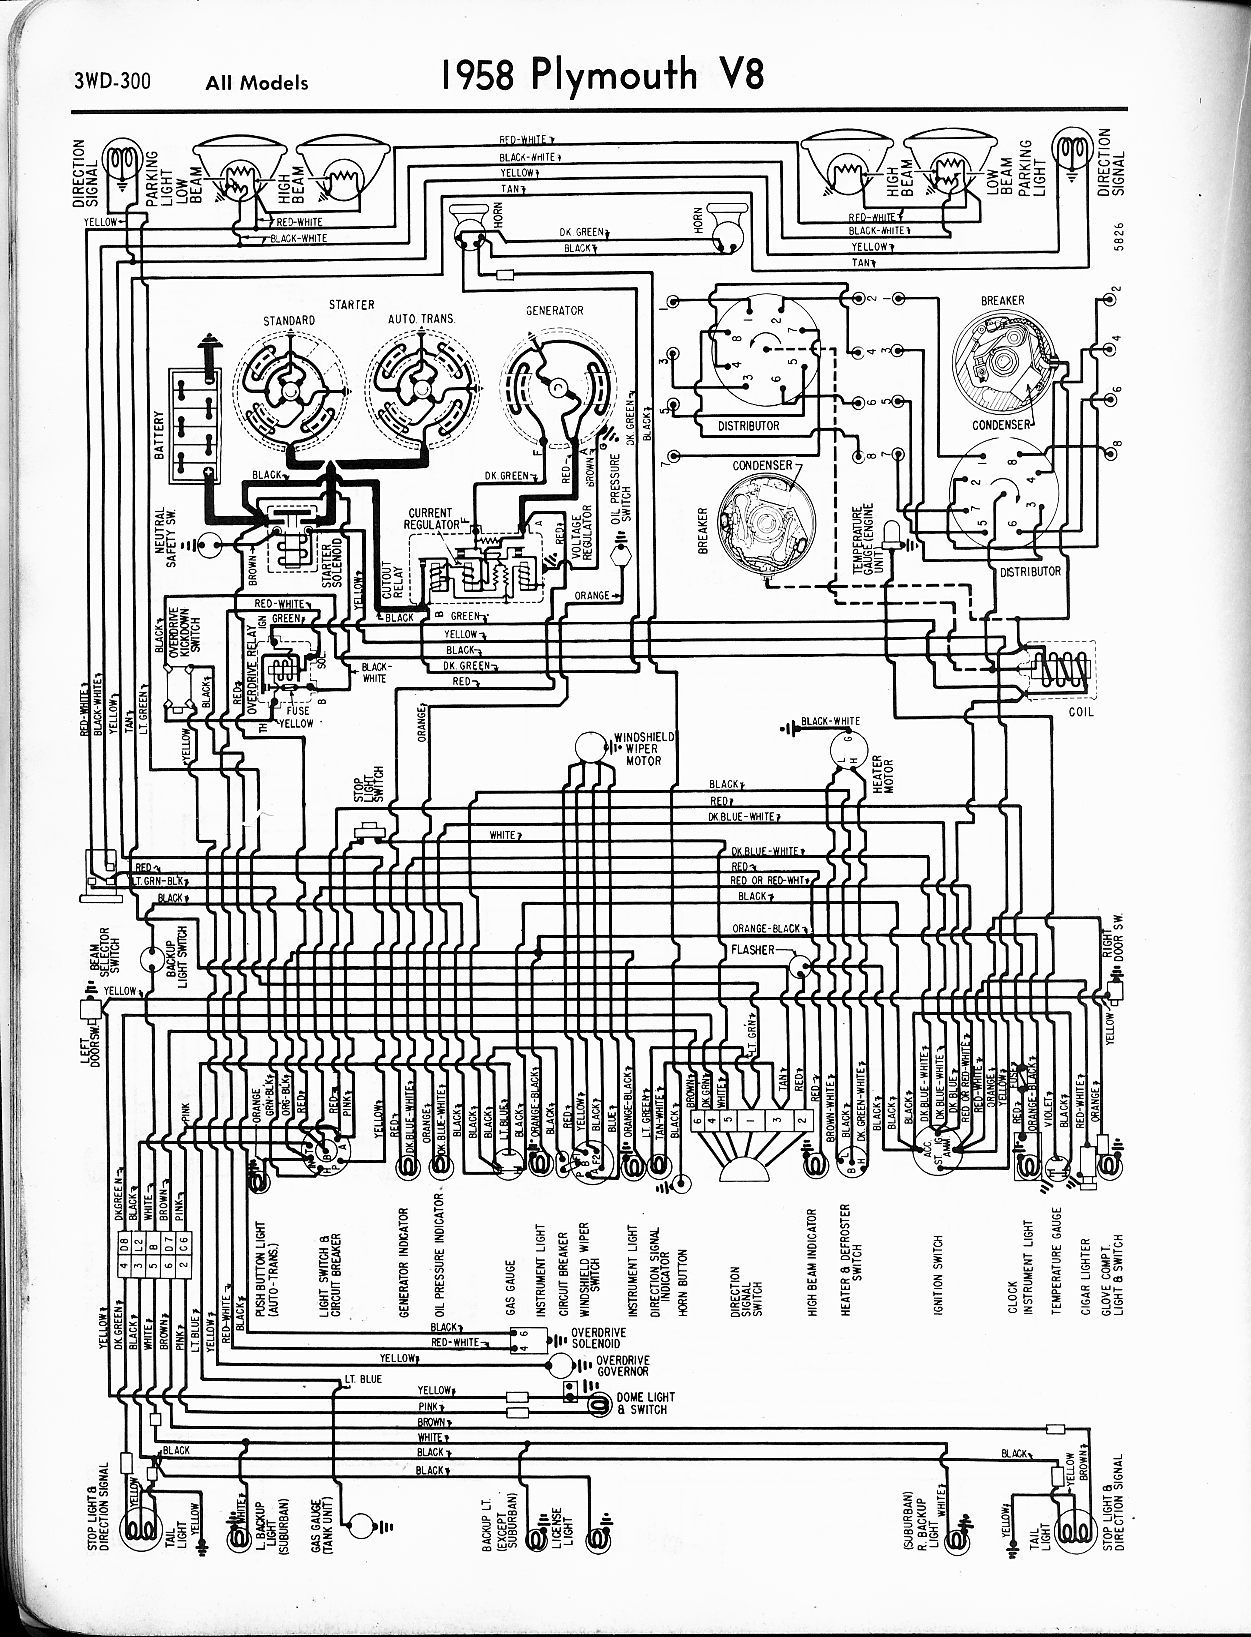 1957 chevy wiring harness diagram for horn 1956 1965 plymouth wiring the old car manual project #3